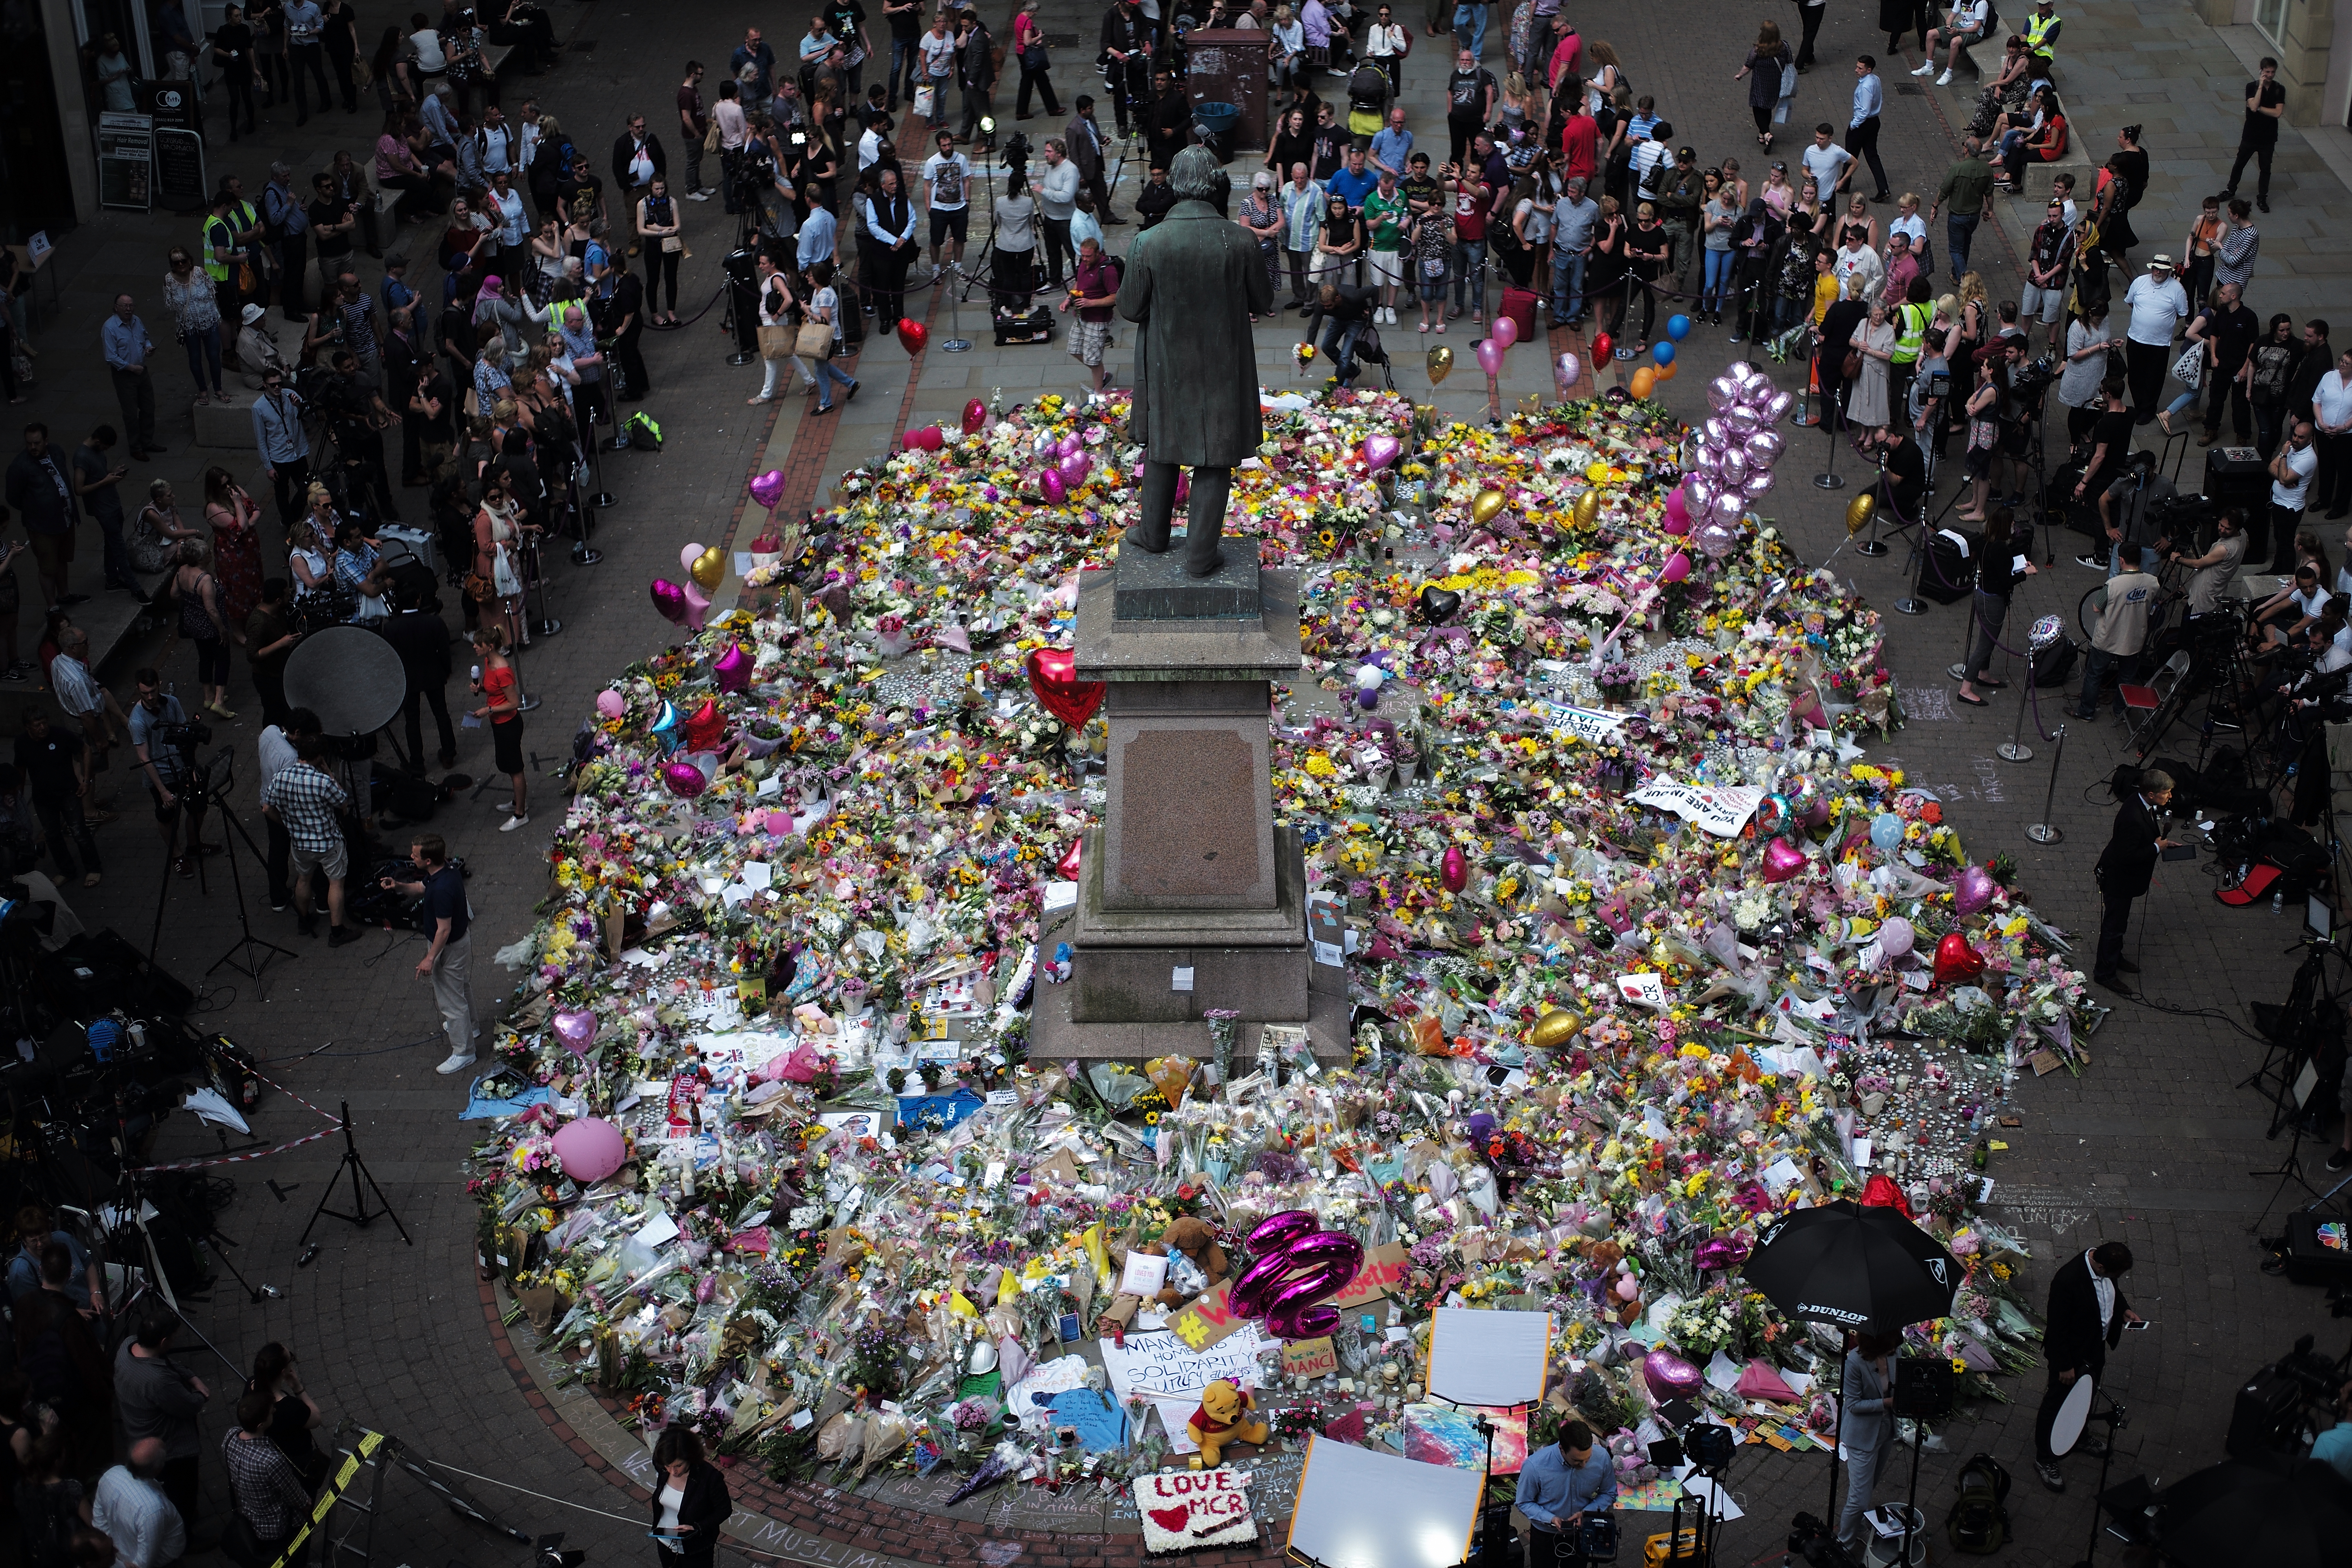 The carpet of floral tributes to the victims and injured of the Manchester Arena bombing covers the ground in St Ann's Square in Manchester,  England on May 25, 2017. (Christopher Furlong/Getty Images)